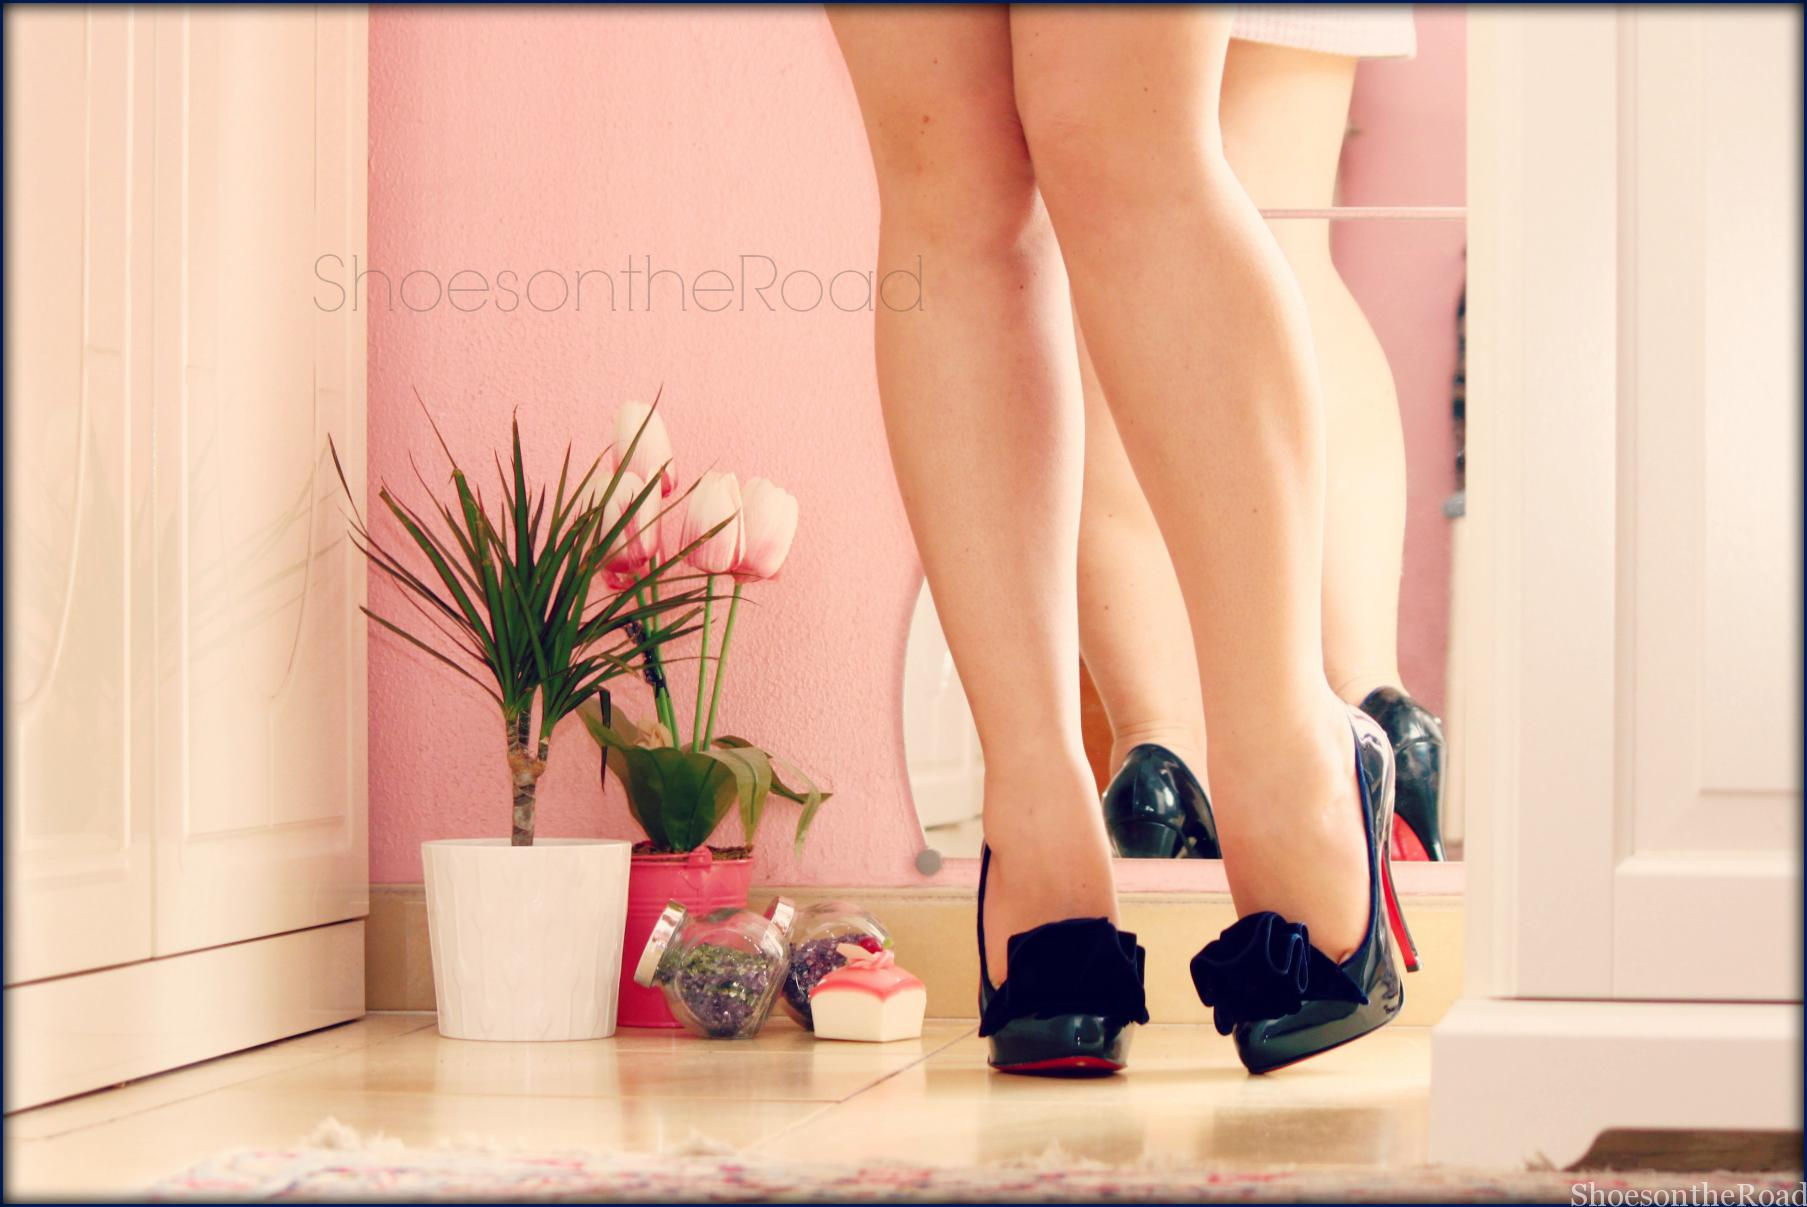 Louboutin_shoesontheroad_Lady_page_1